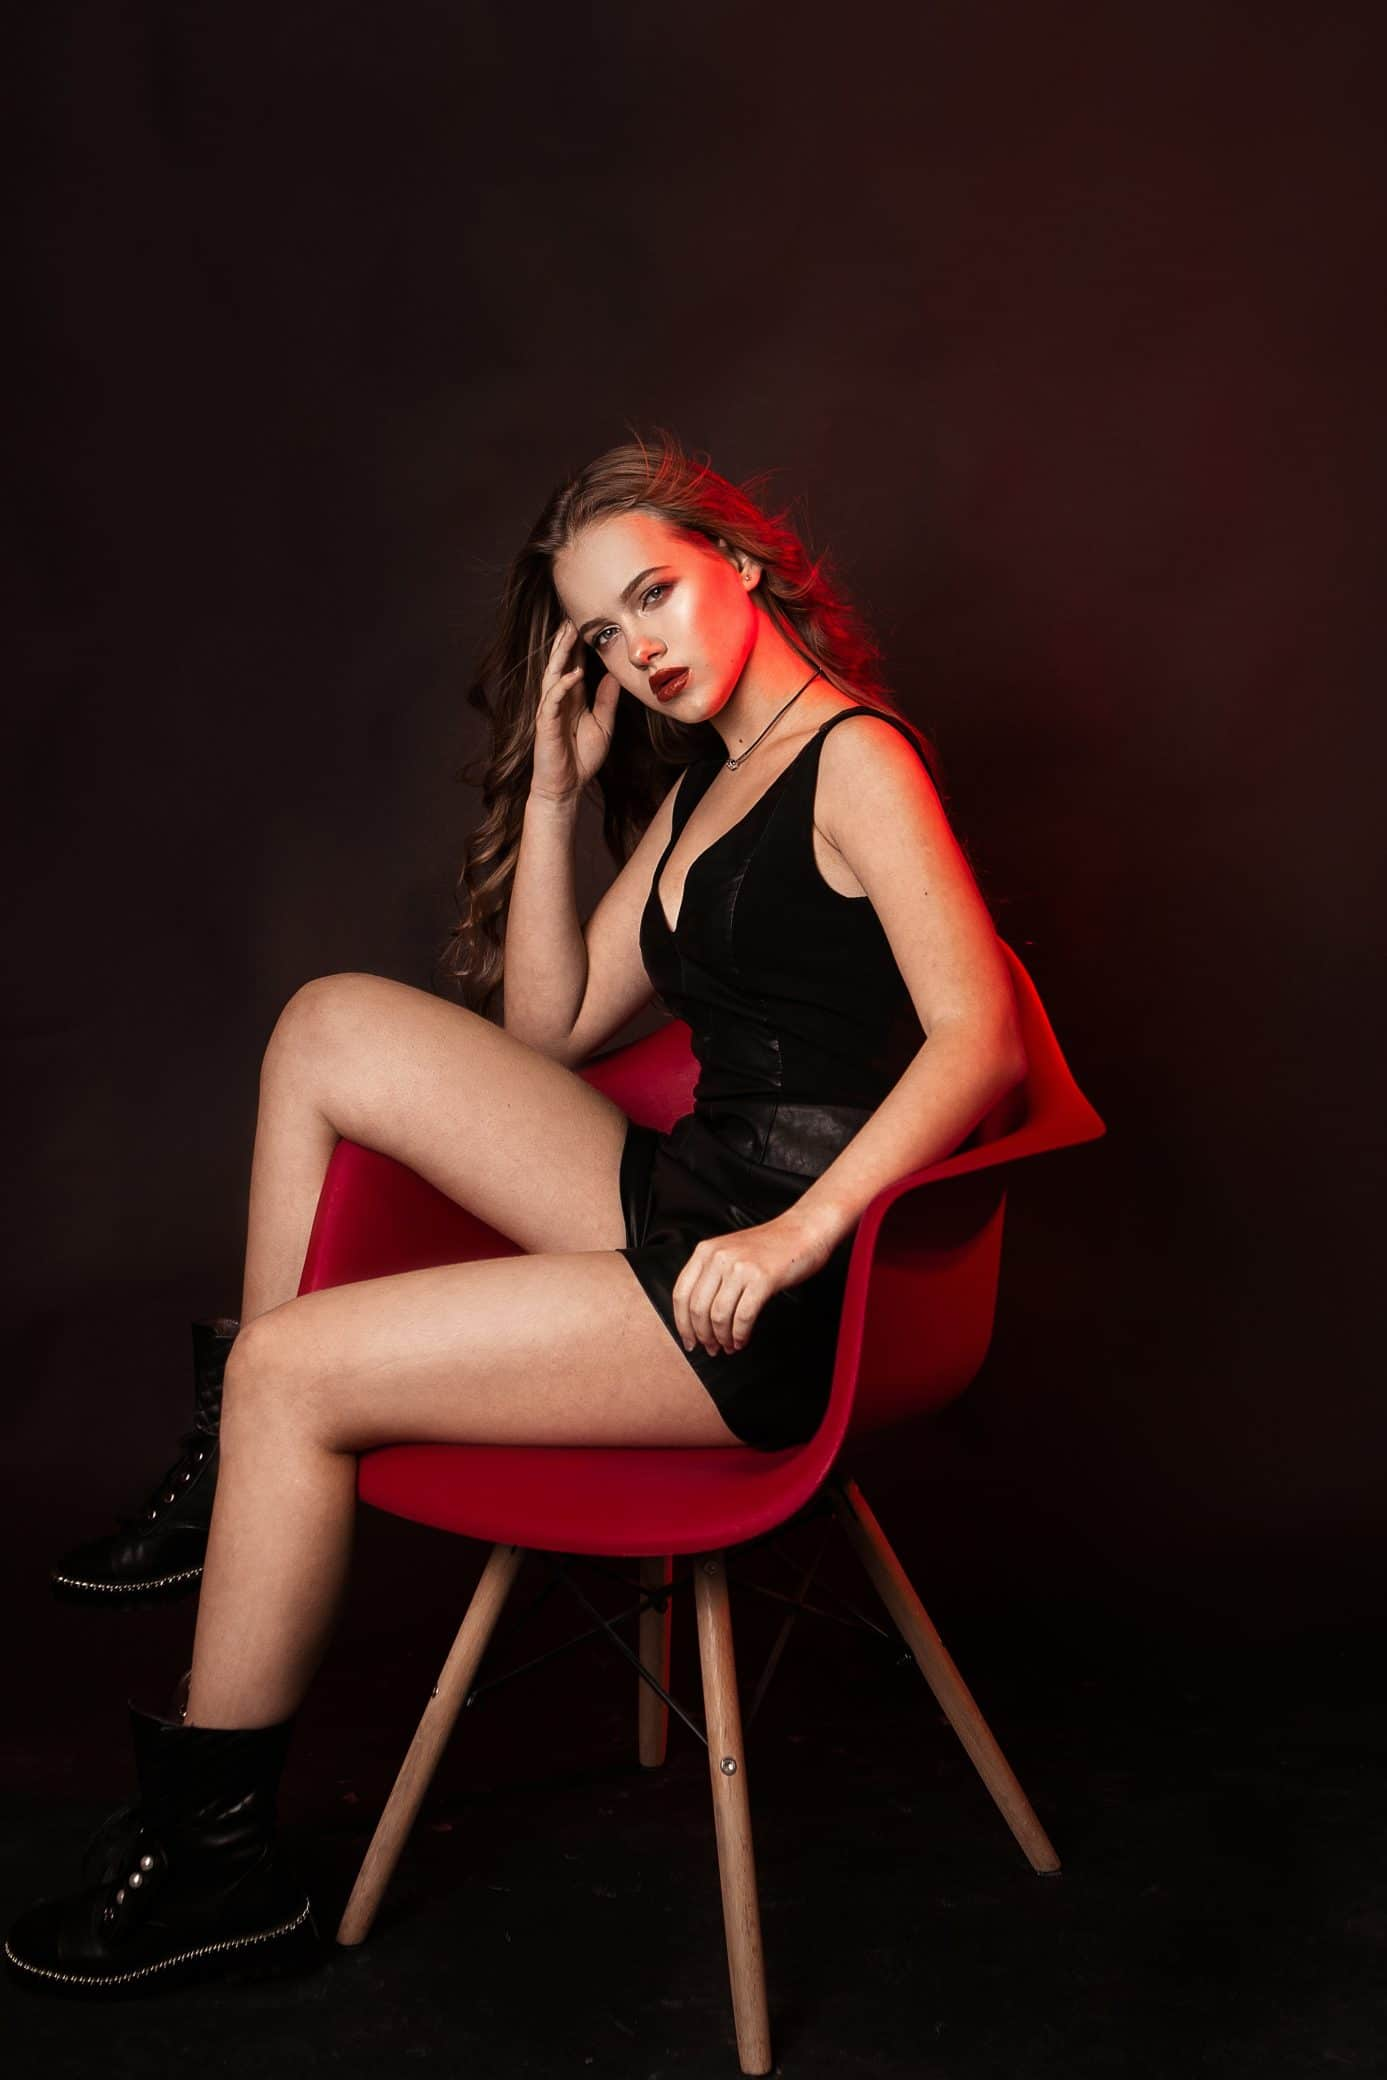 Beautiful women Ангелинка Angelina wearing a black dress and black boots sitting on a chair with one leg up holding her head for a photoshoot